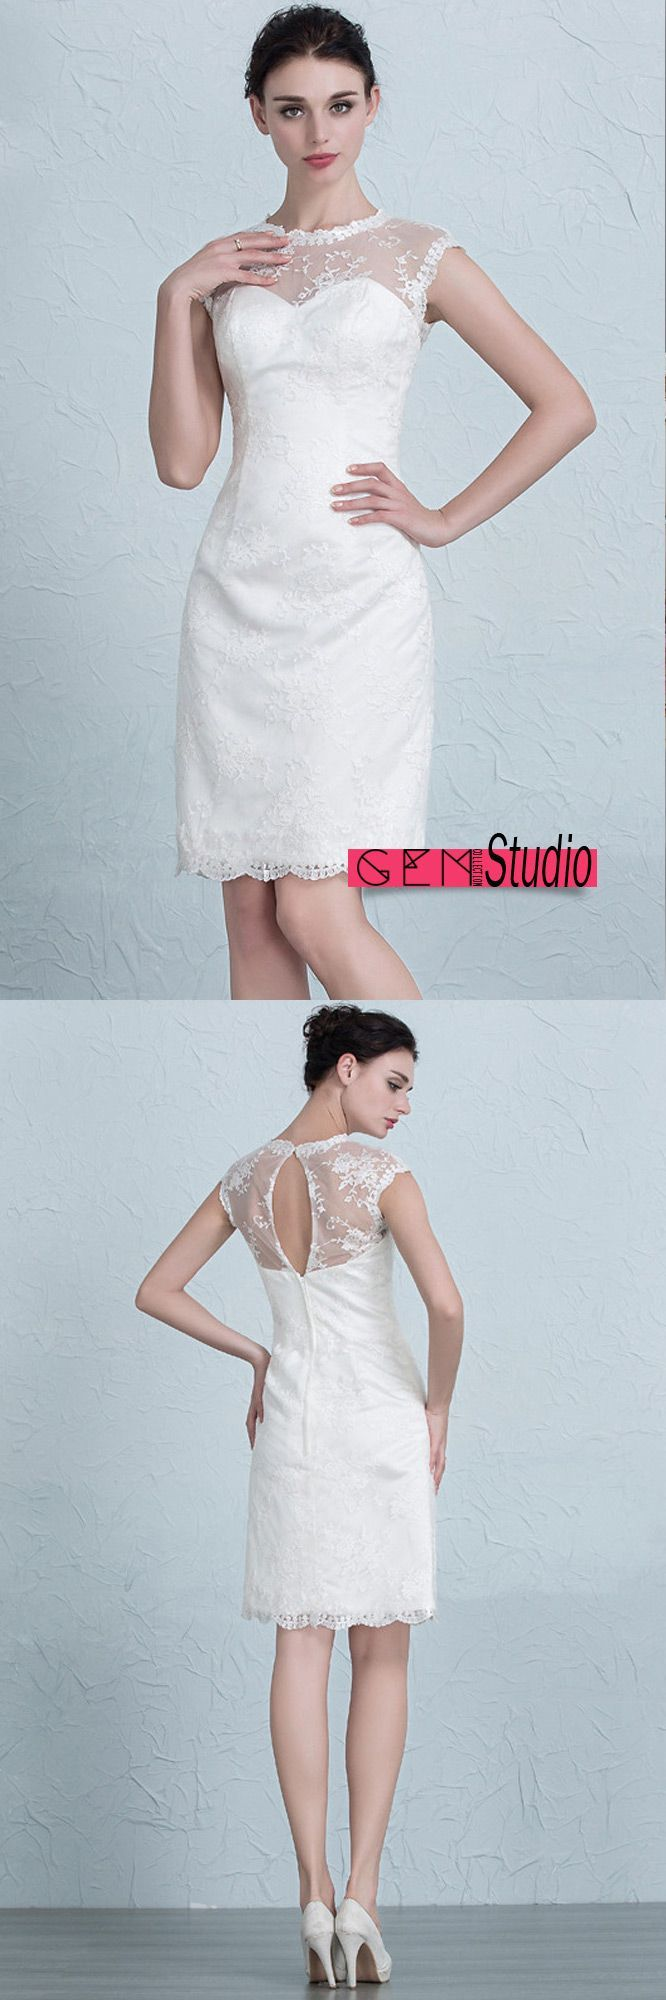 Elegant Tight Short Wedding Dresses Reception Modest Lace Style ...